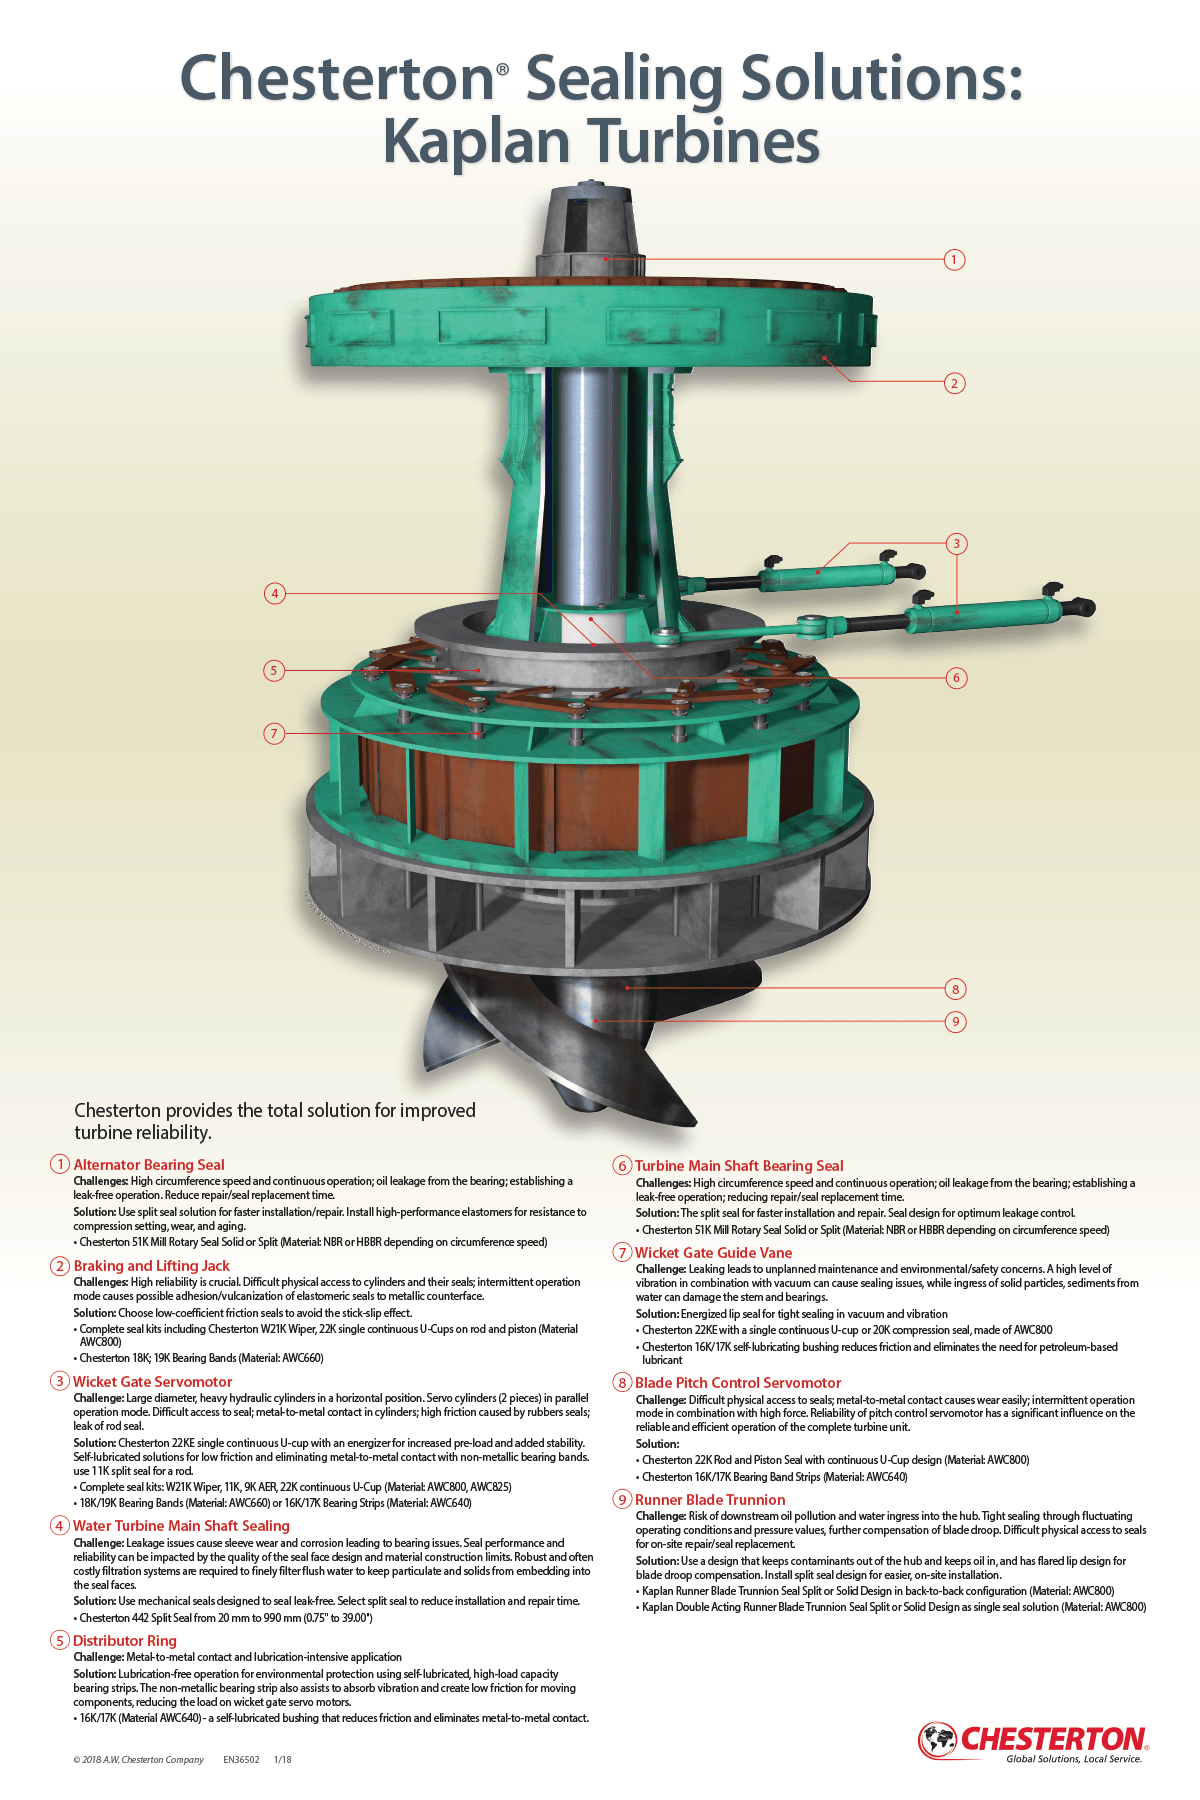 Kaplan turbine sealing